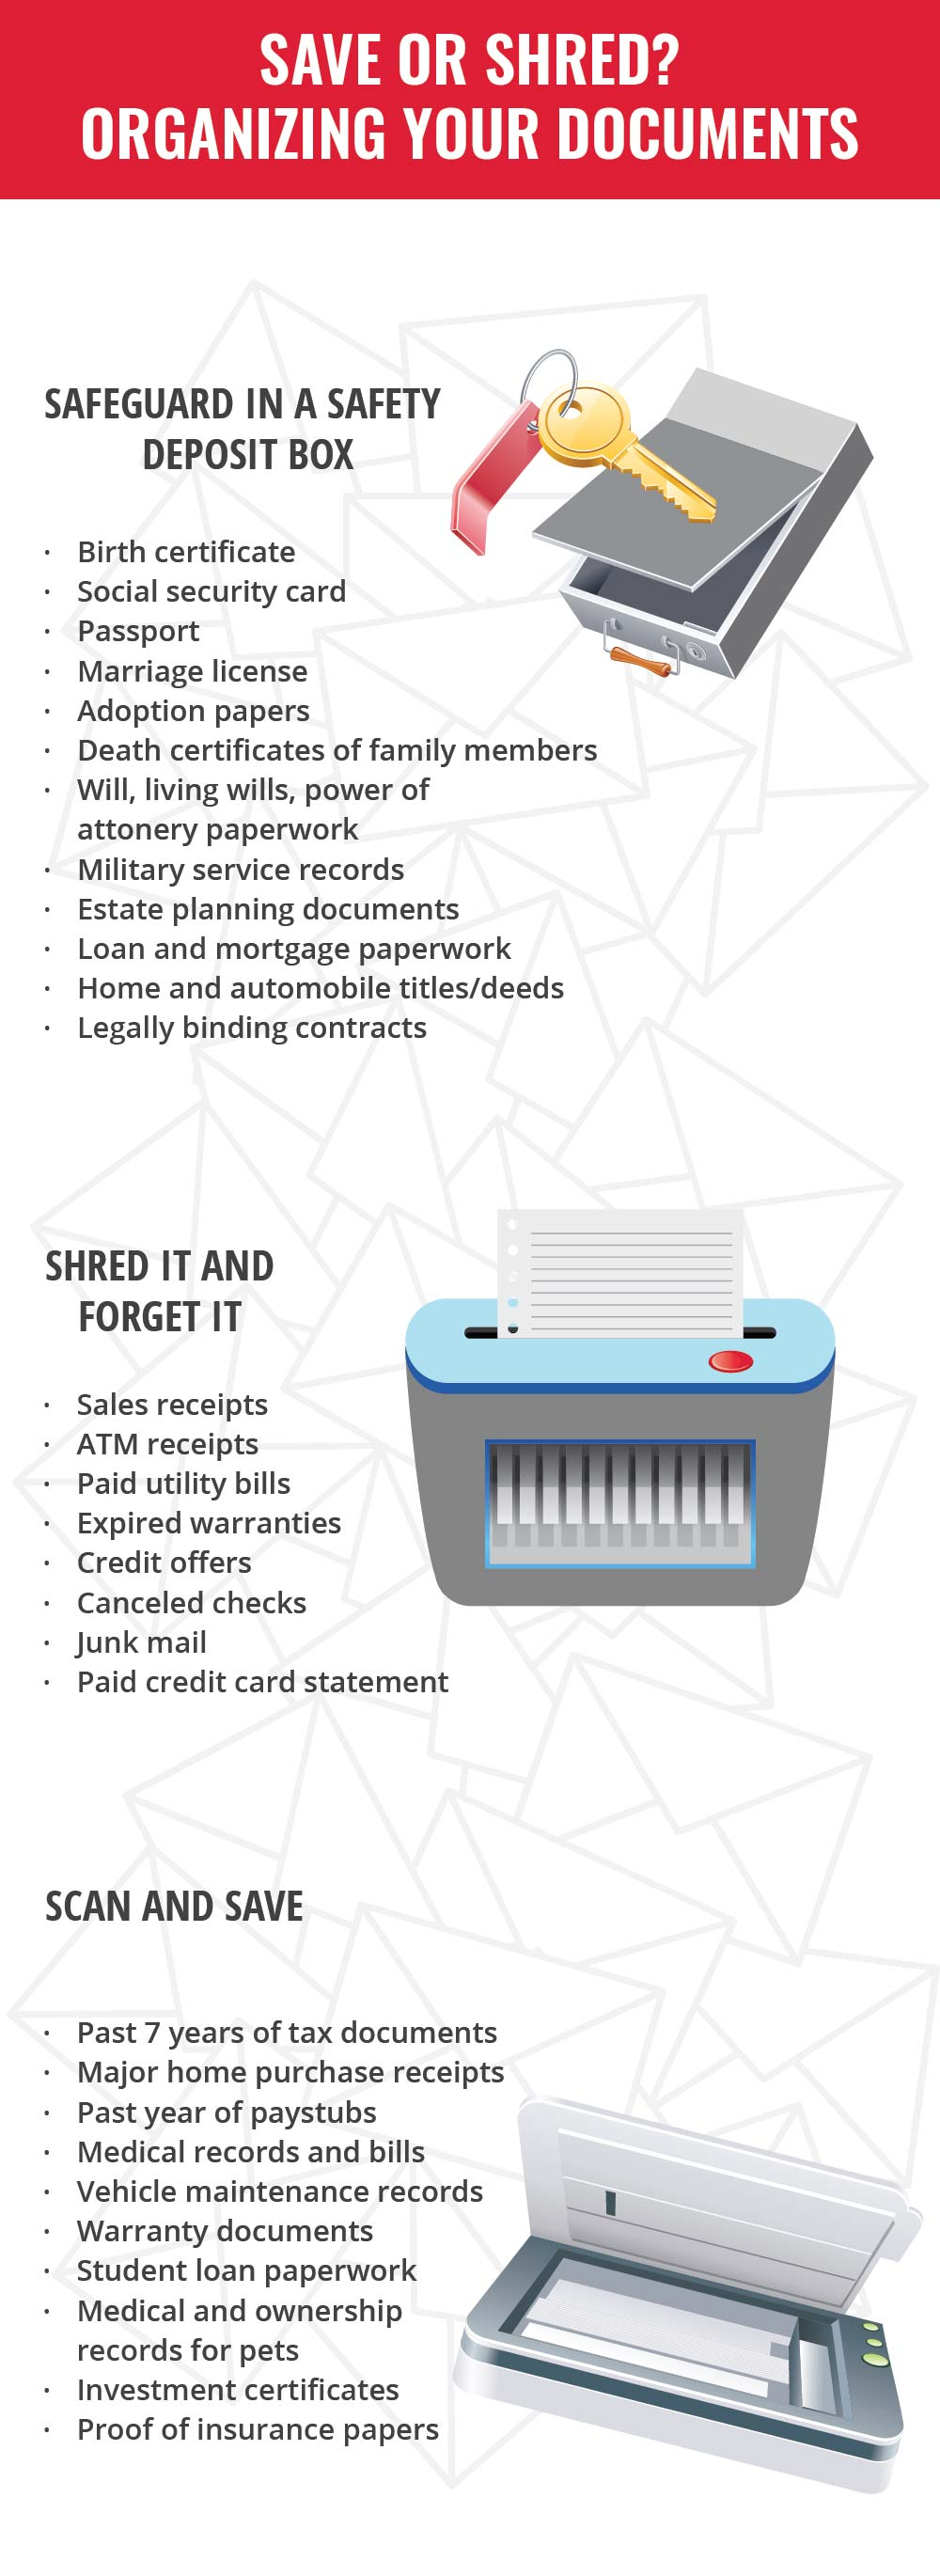 Save or Shred? Organizing Your Docs | American Family Insurance